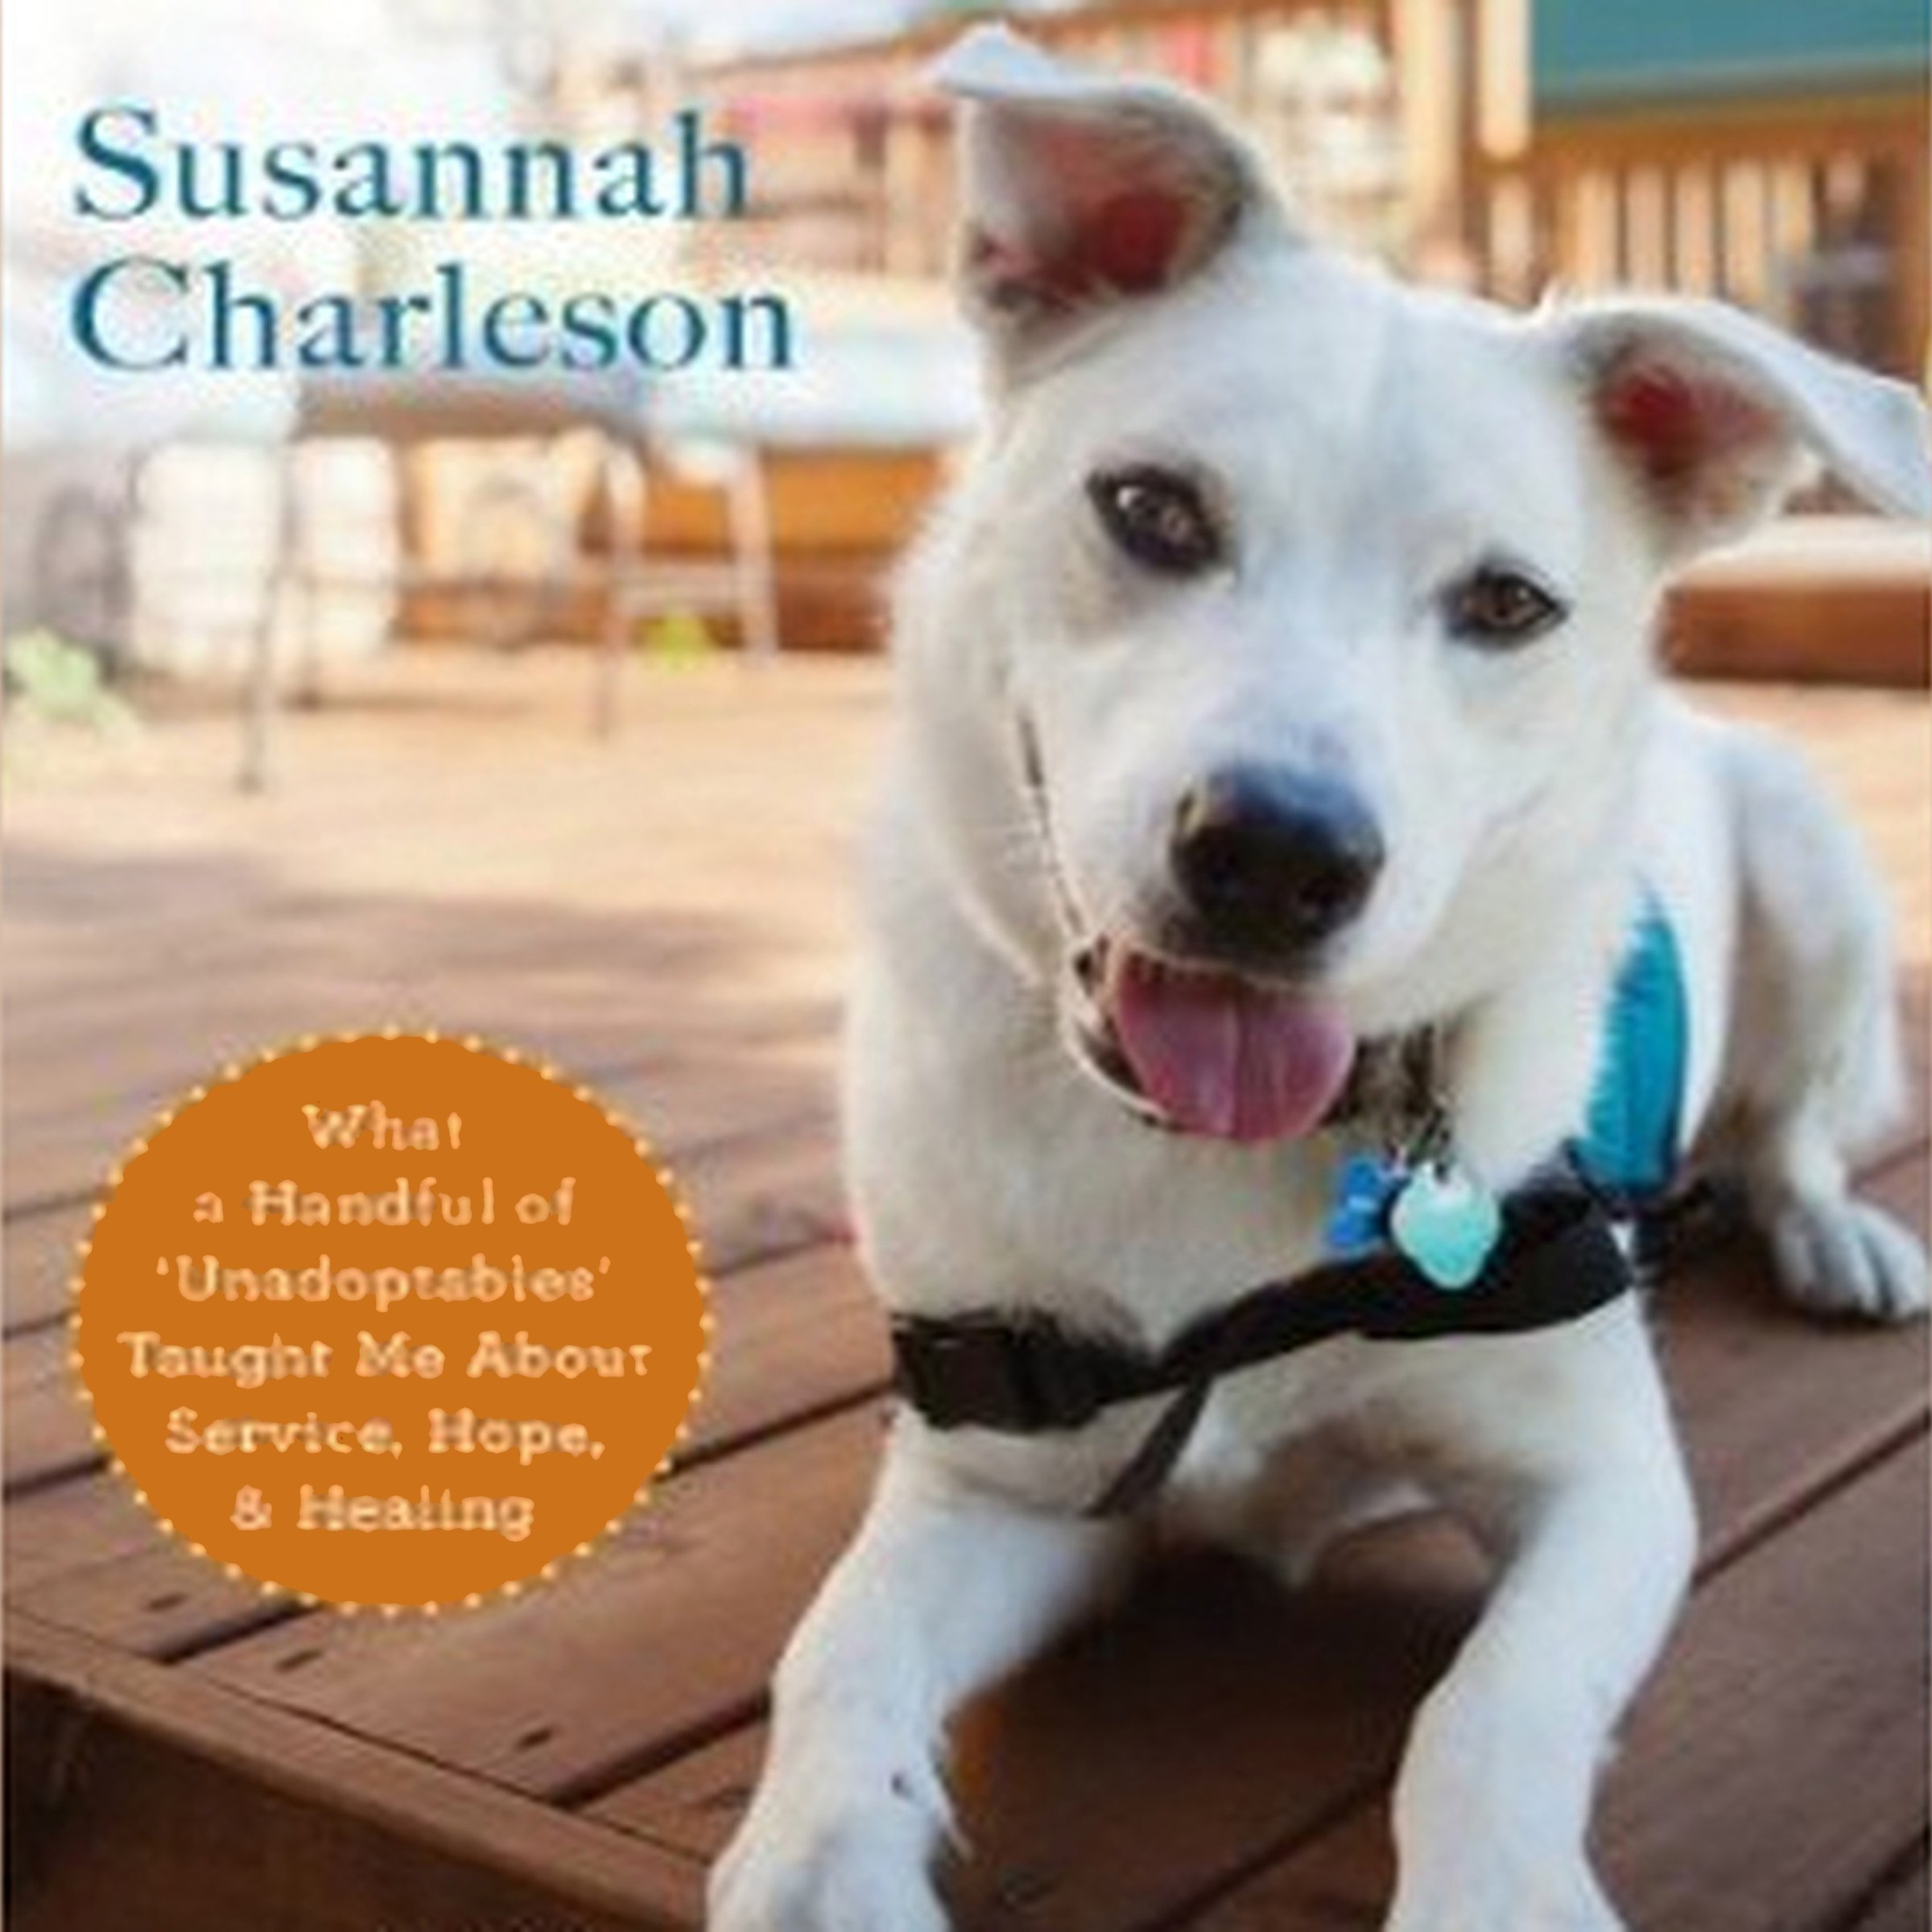 The Possibility Dogs: What a Handful of 'Unadoptables' Taught Me about Service, Hope, and Healing